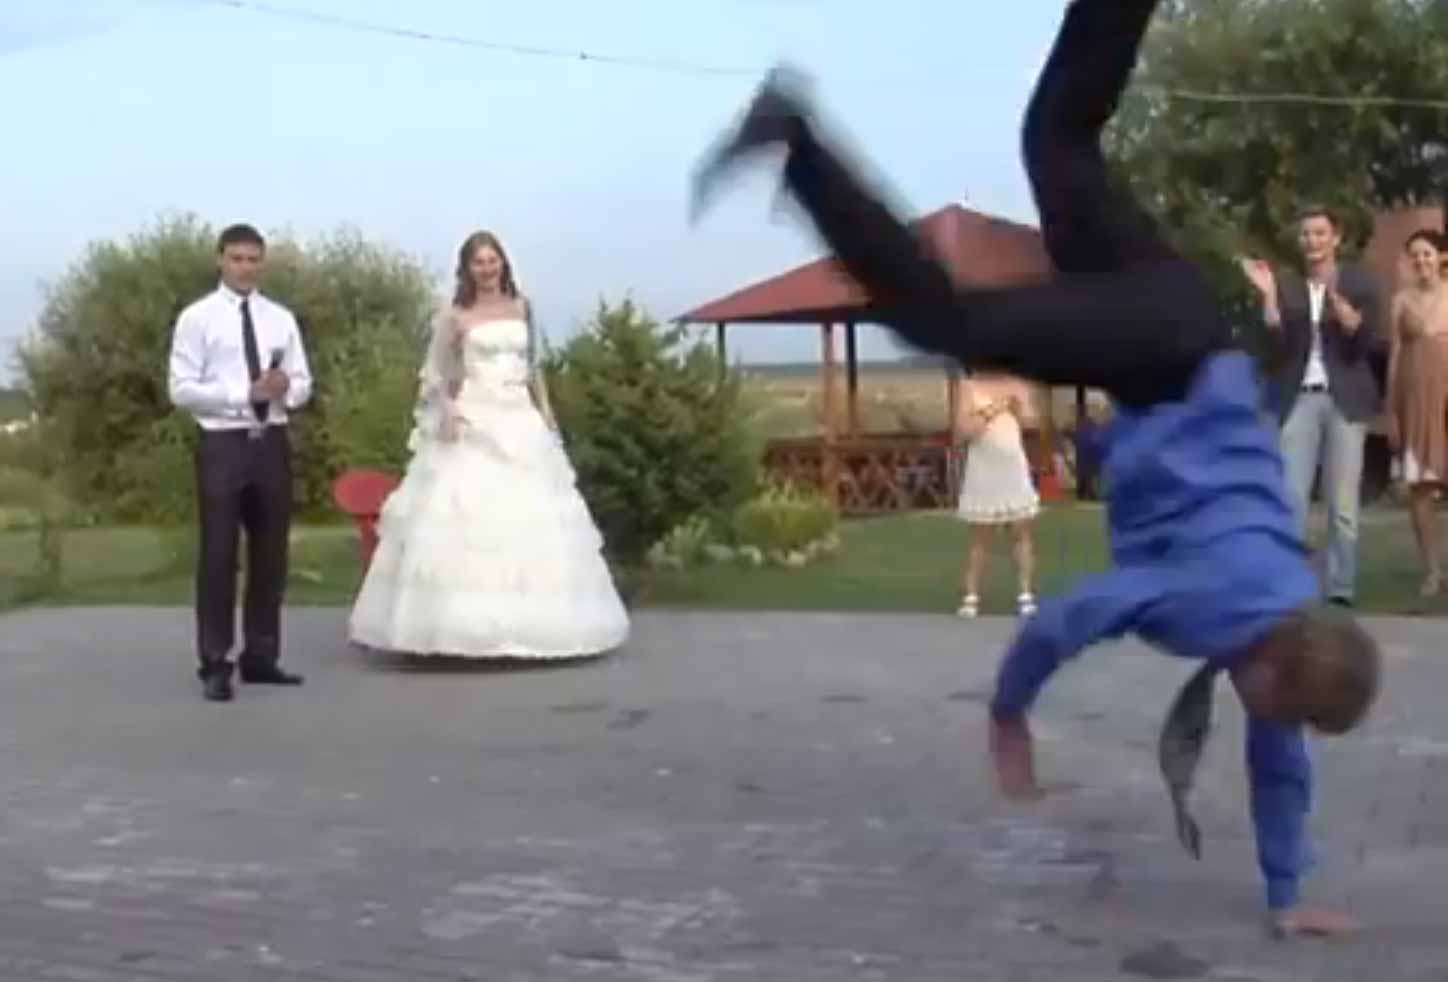 Wedding Couples Dirty Dancing Goes Viral Video - ABC News